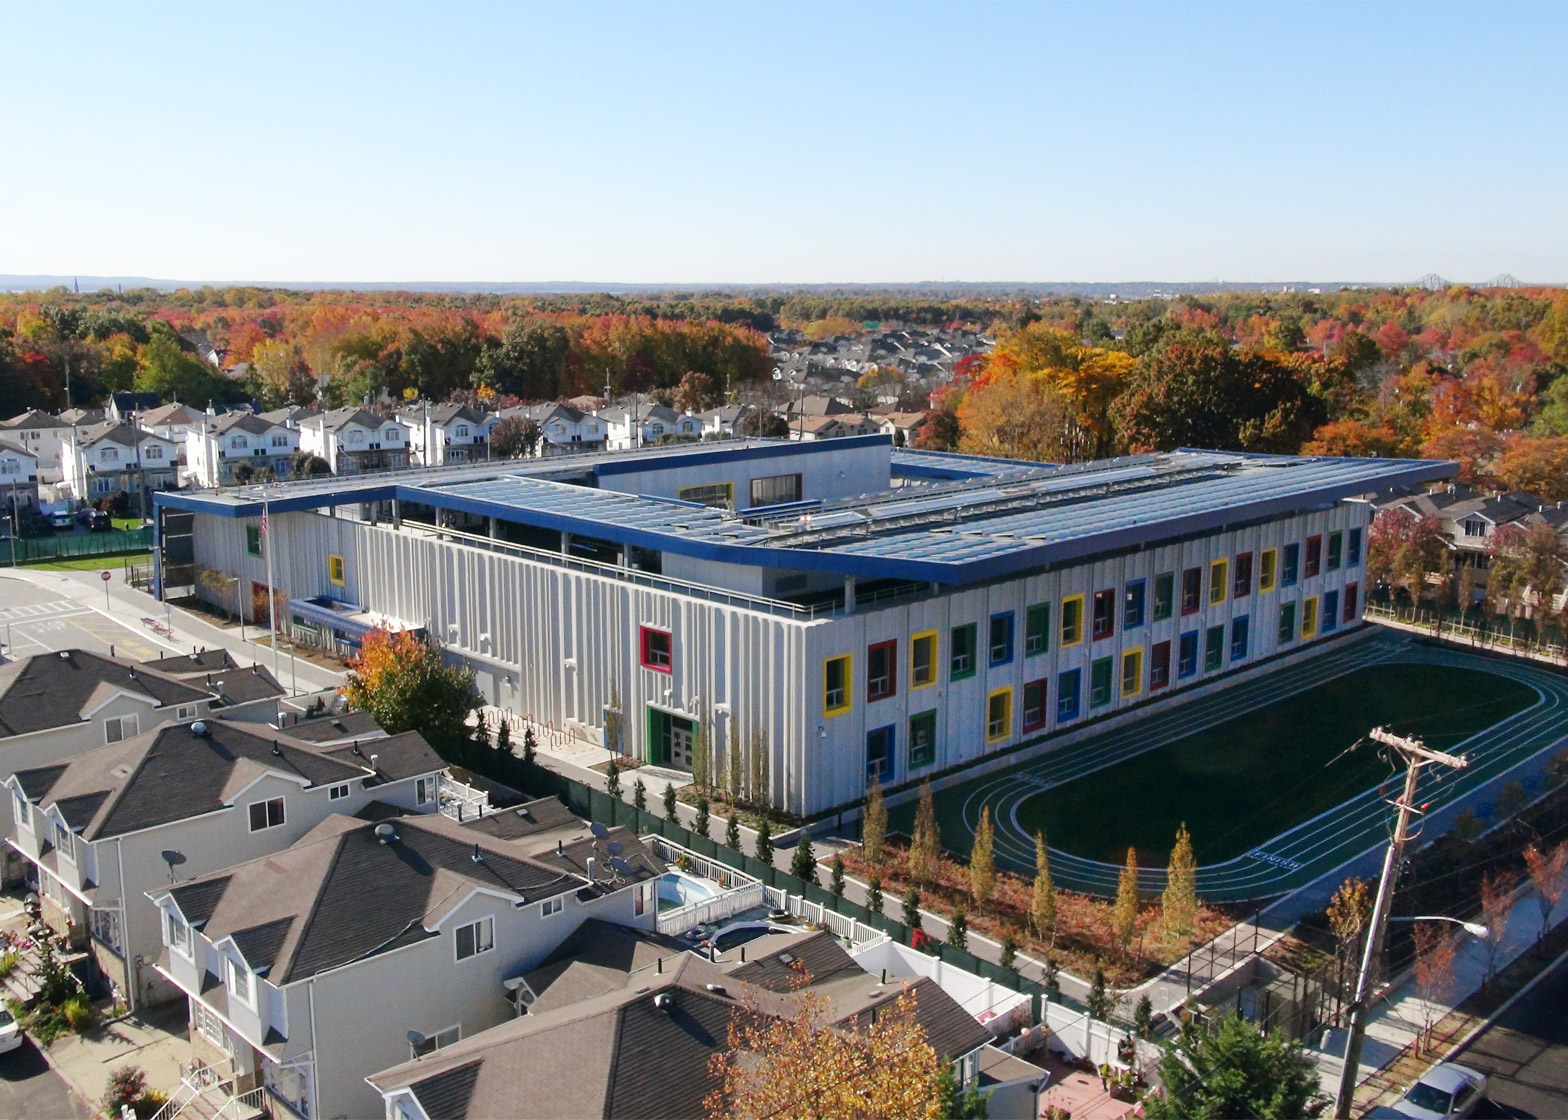 The Kathleen Grimm School for Leadership and Sustainability, New York City's first net-zero energy school building on the south shore of Staten Island. Image: www.arch2o.com.